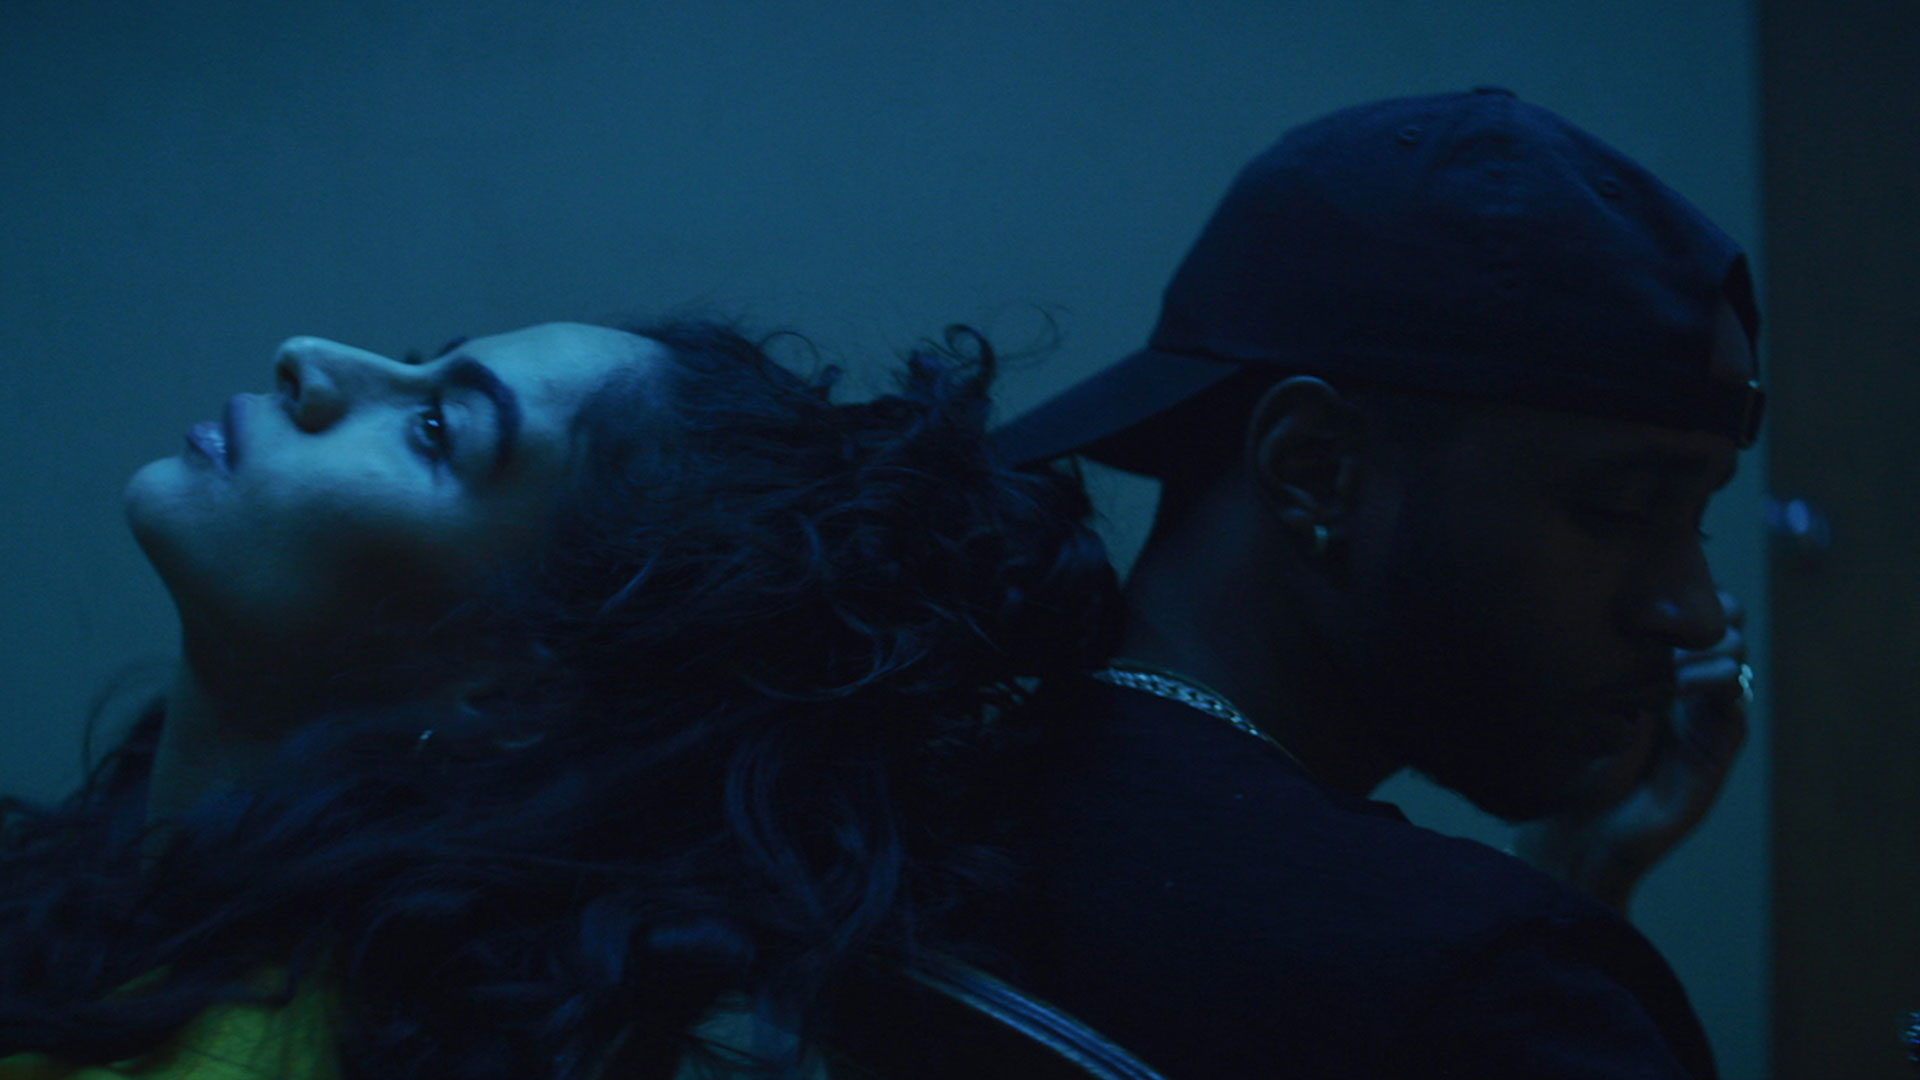 Under a deep blue lighting at night, Jessie Reyez tips her had back to rest on the shoulder of 6LACK.